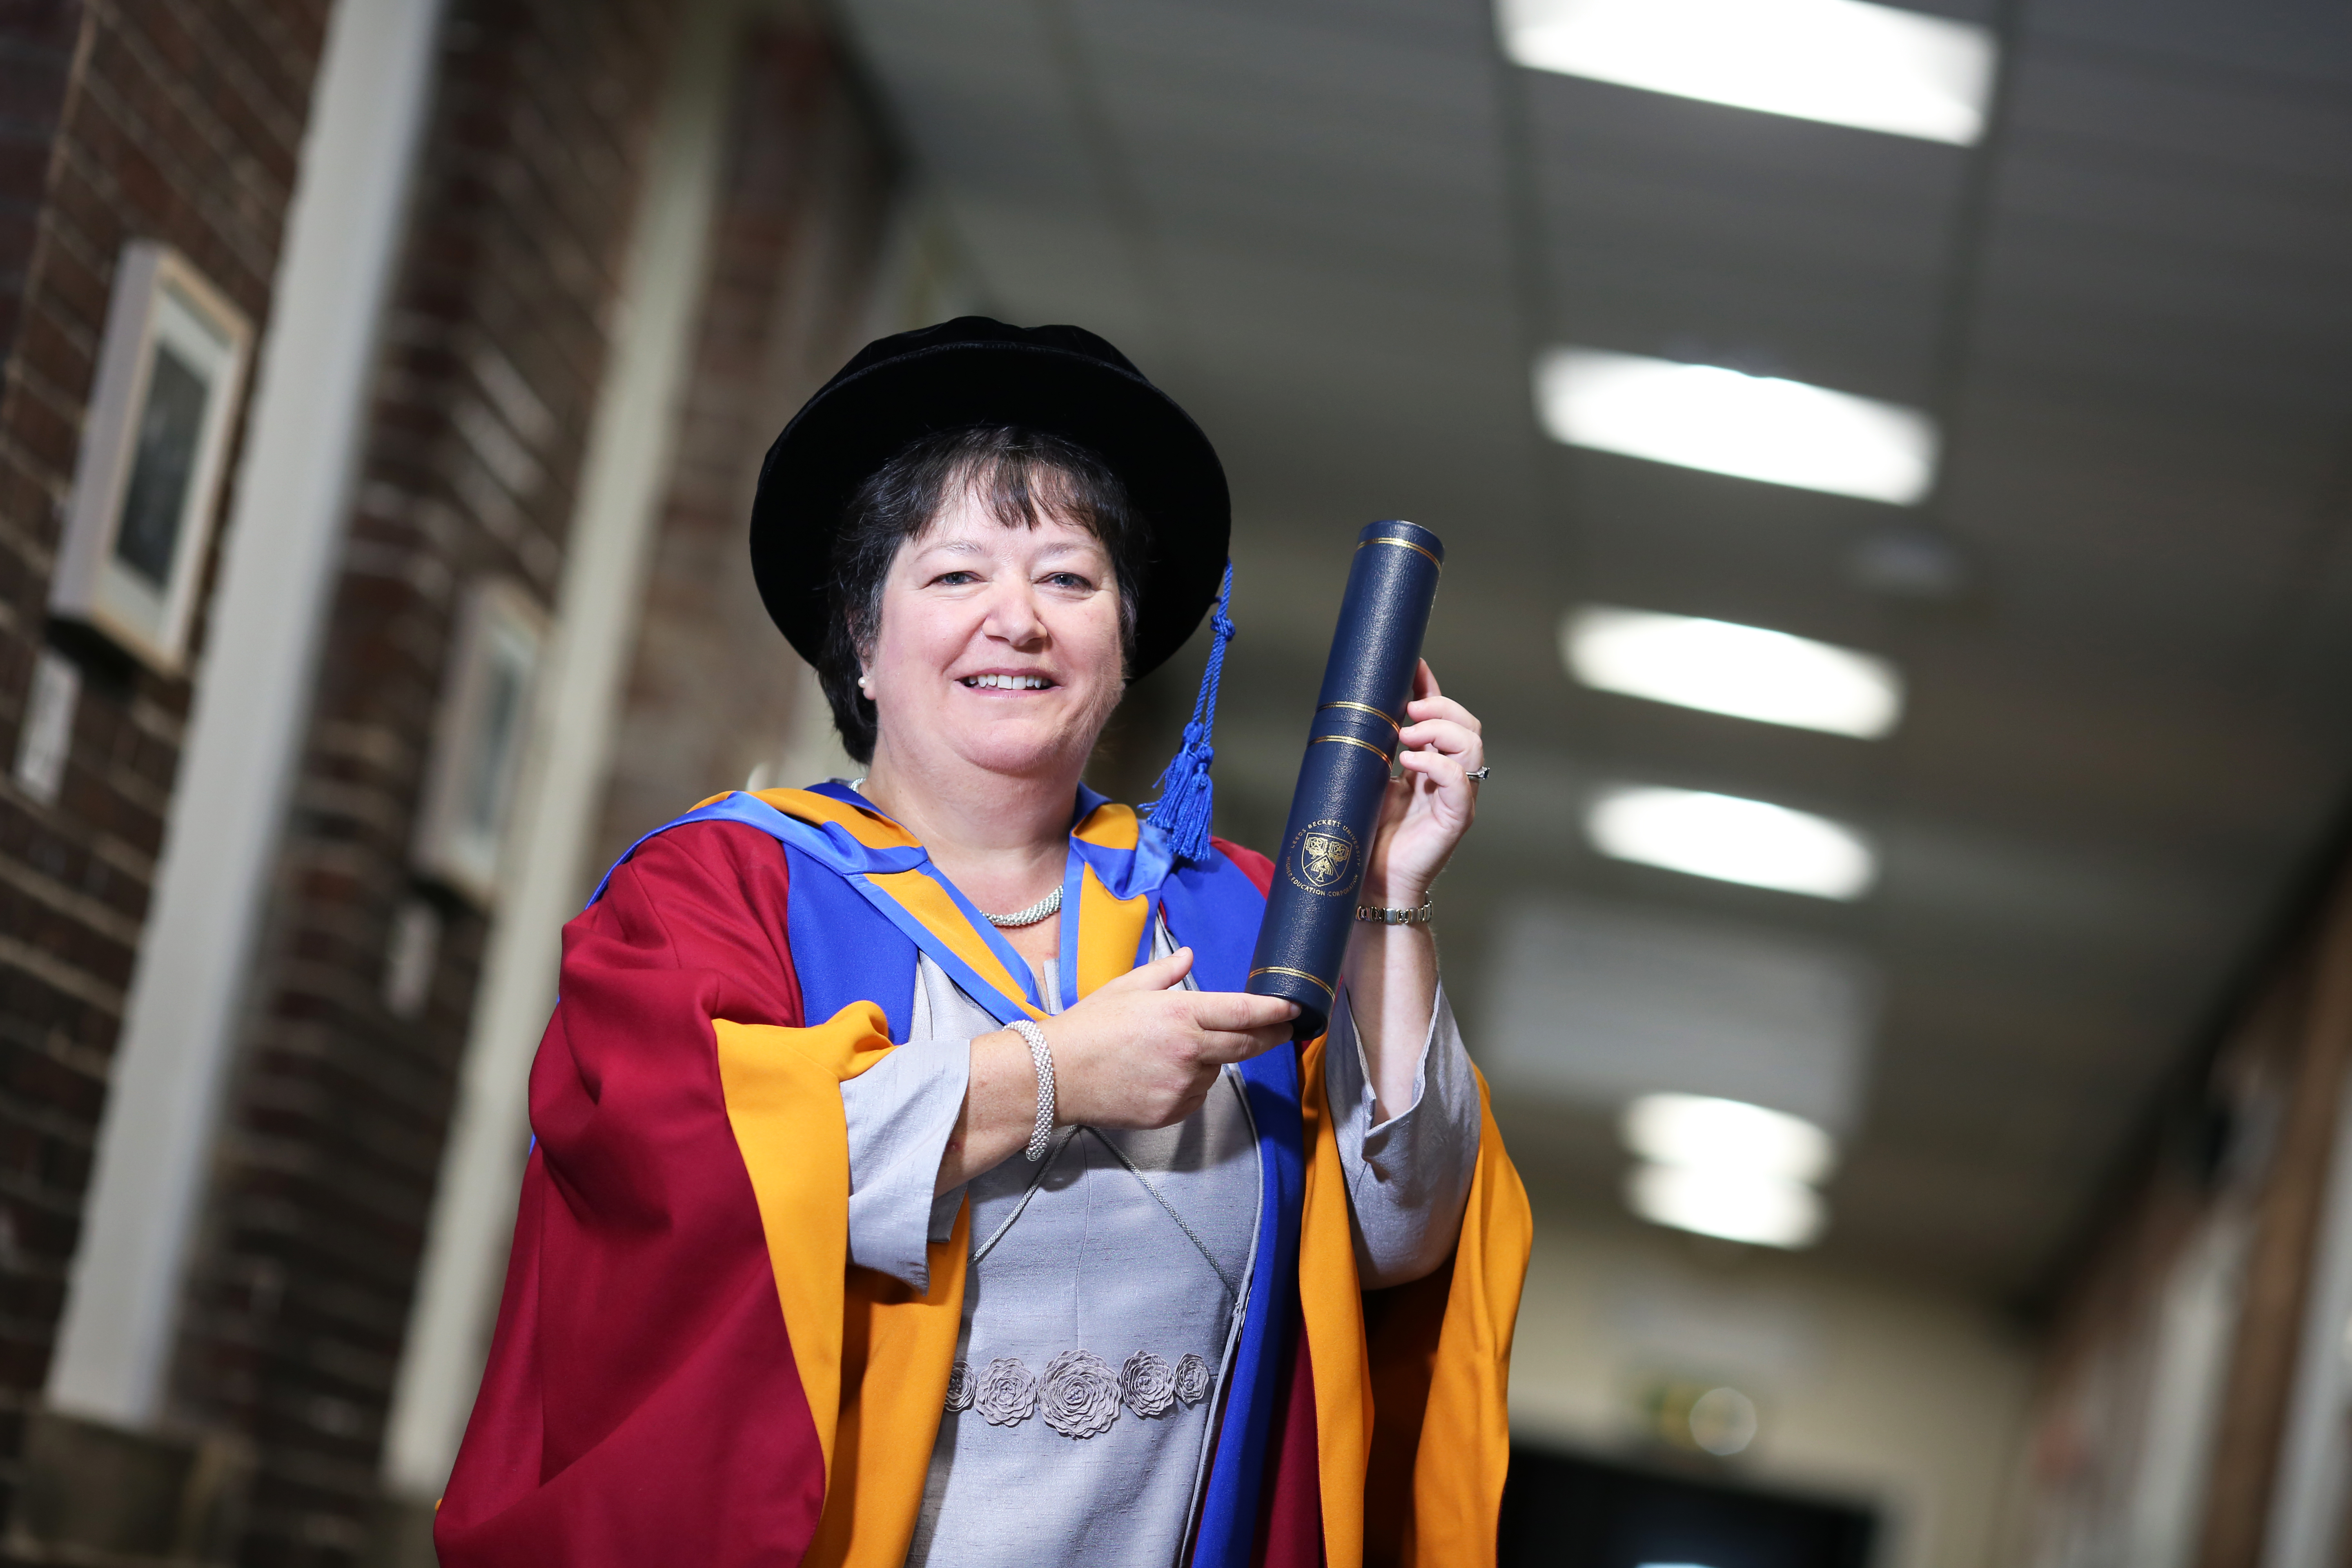 Leeds Community Foundation leader, Sally-Anne Greenfield, receives honorary degree